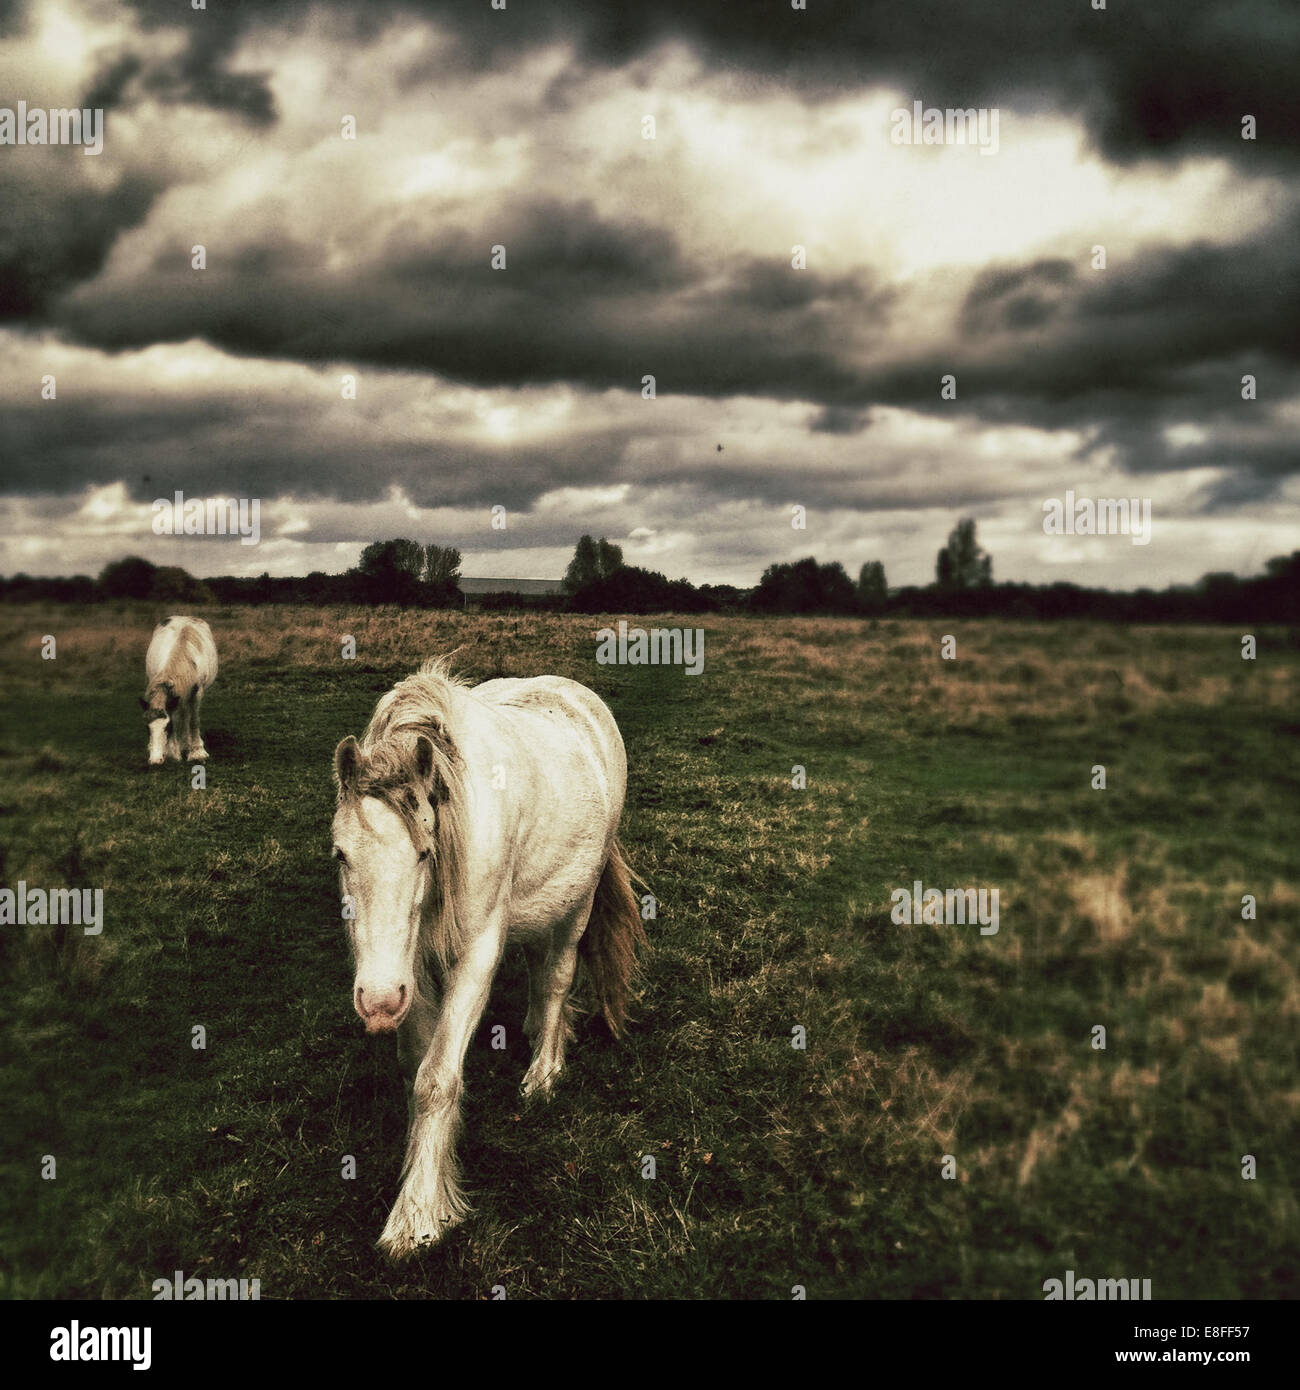 Two Horses in field with moody sky - Stock Image